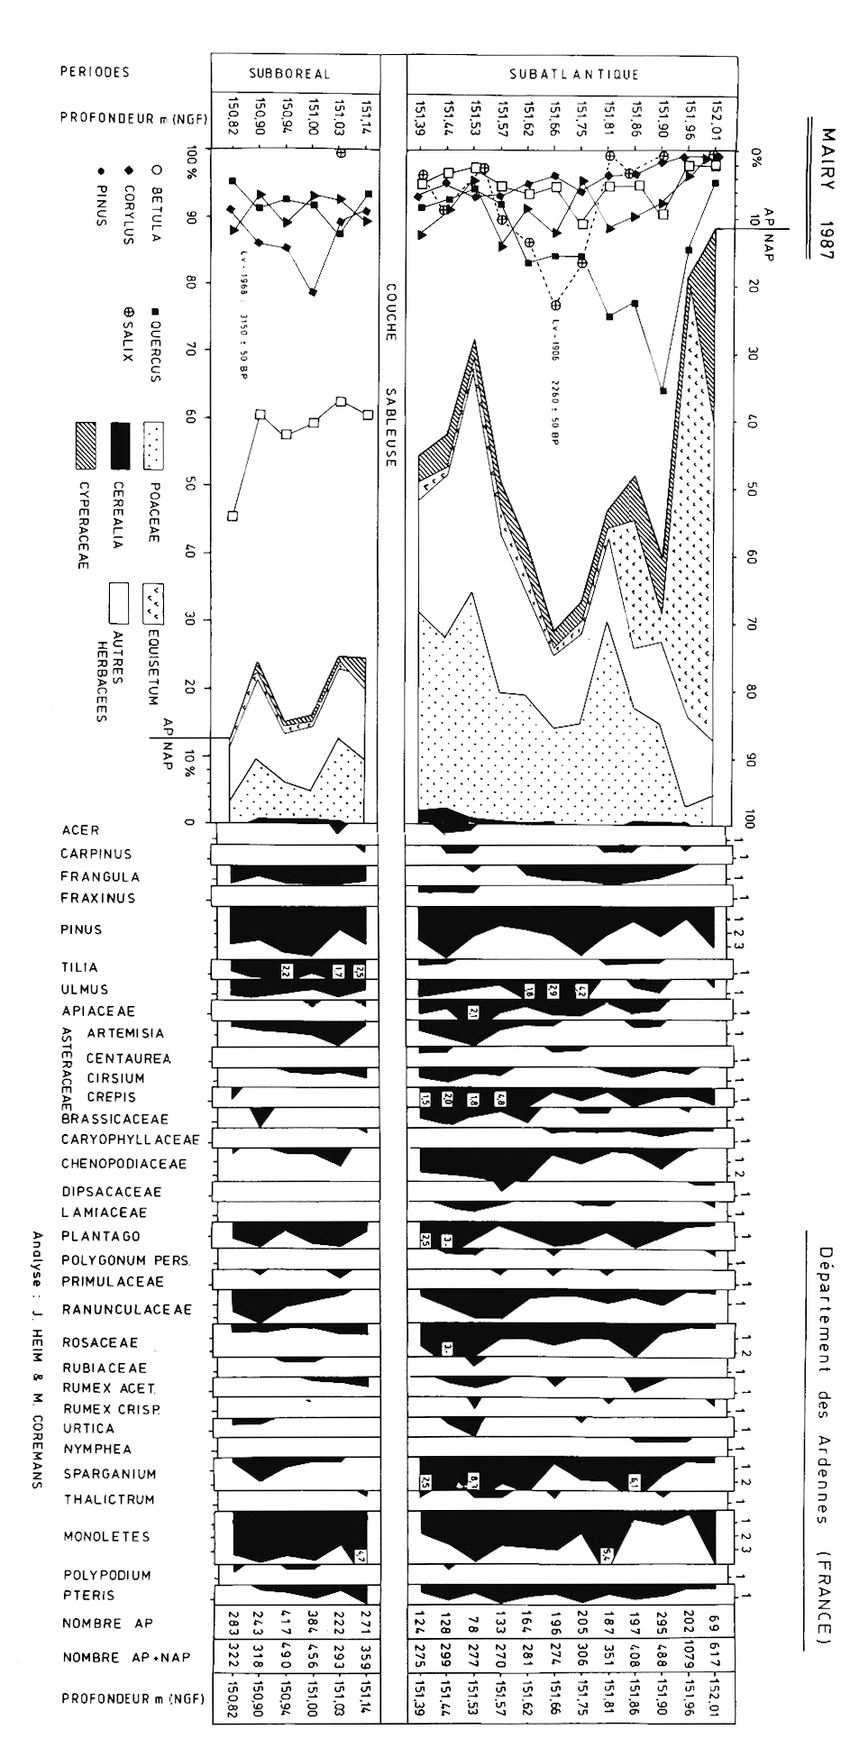 hight resolution of diagramme pollinique du chenal my 87 cf fig 4 pollen diagramm